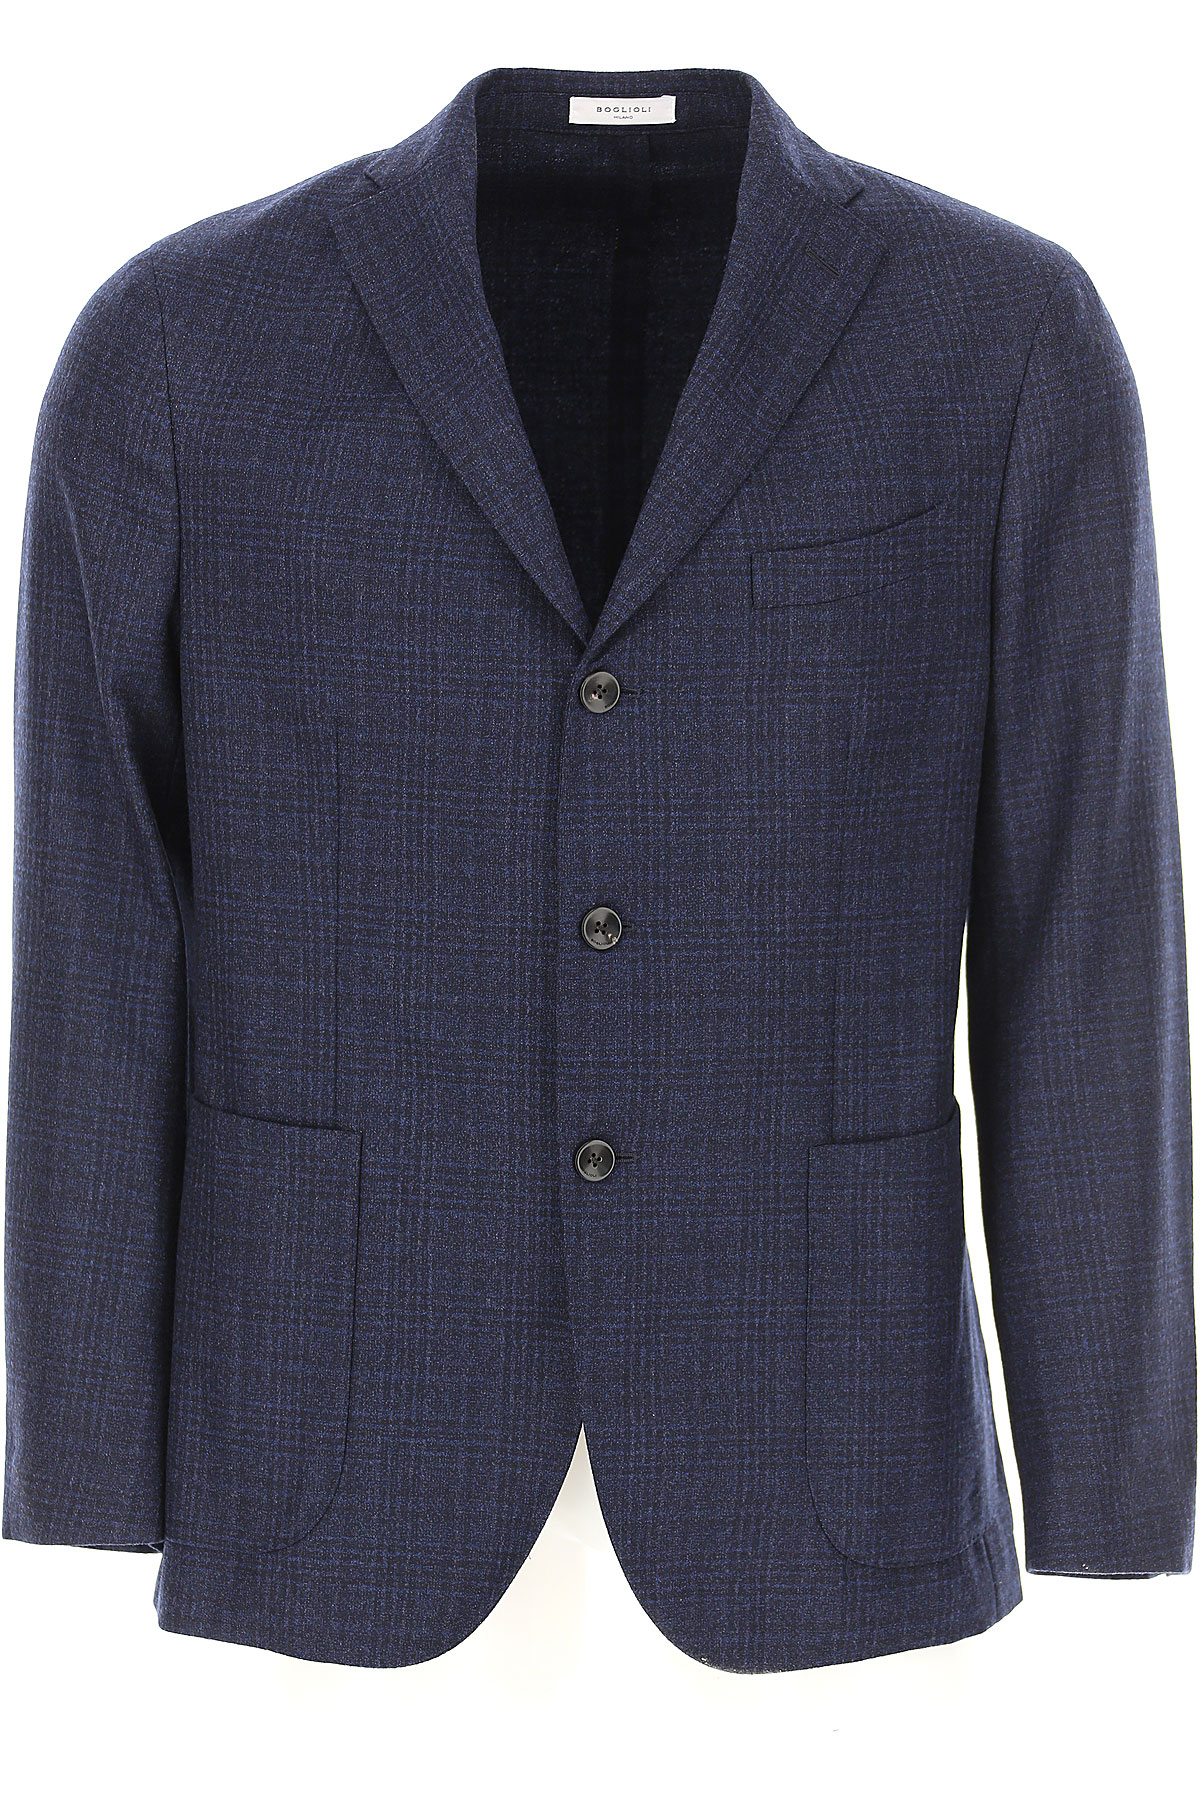 Boglioli Blazer for Men, Sport Coat On Sale, Dark Denim Blue, Virgin wool, 2019, L S XL